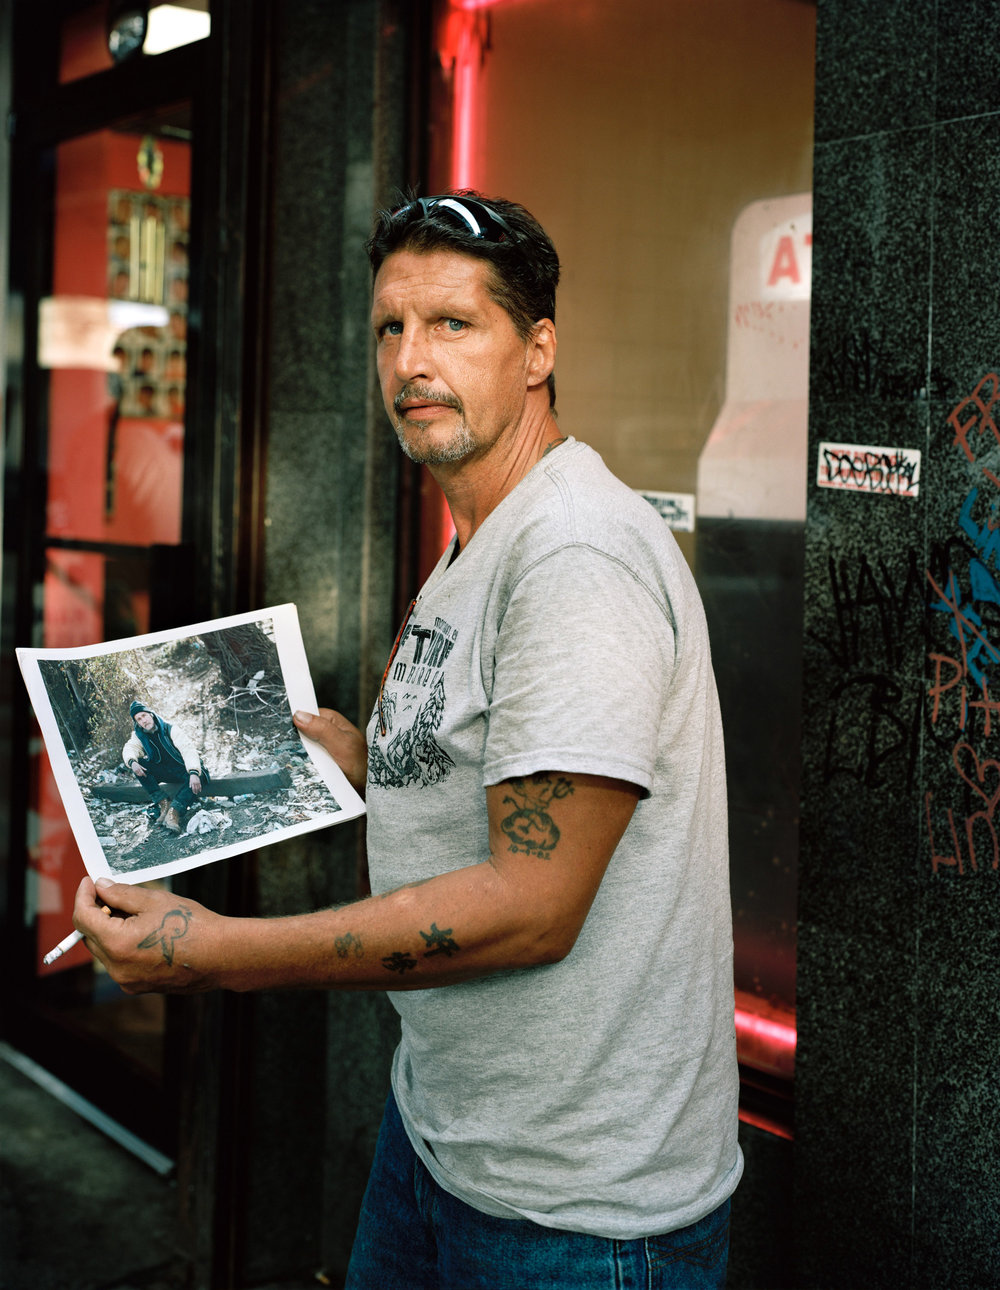 Robert holds a page of his recently deceased brother Edward. Kensington & Somerset Street. 2011. © Jeffrey Stockbridge